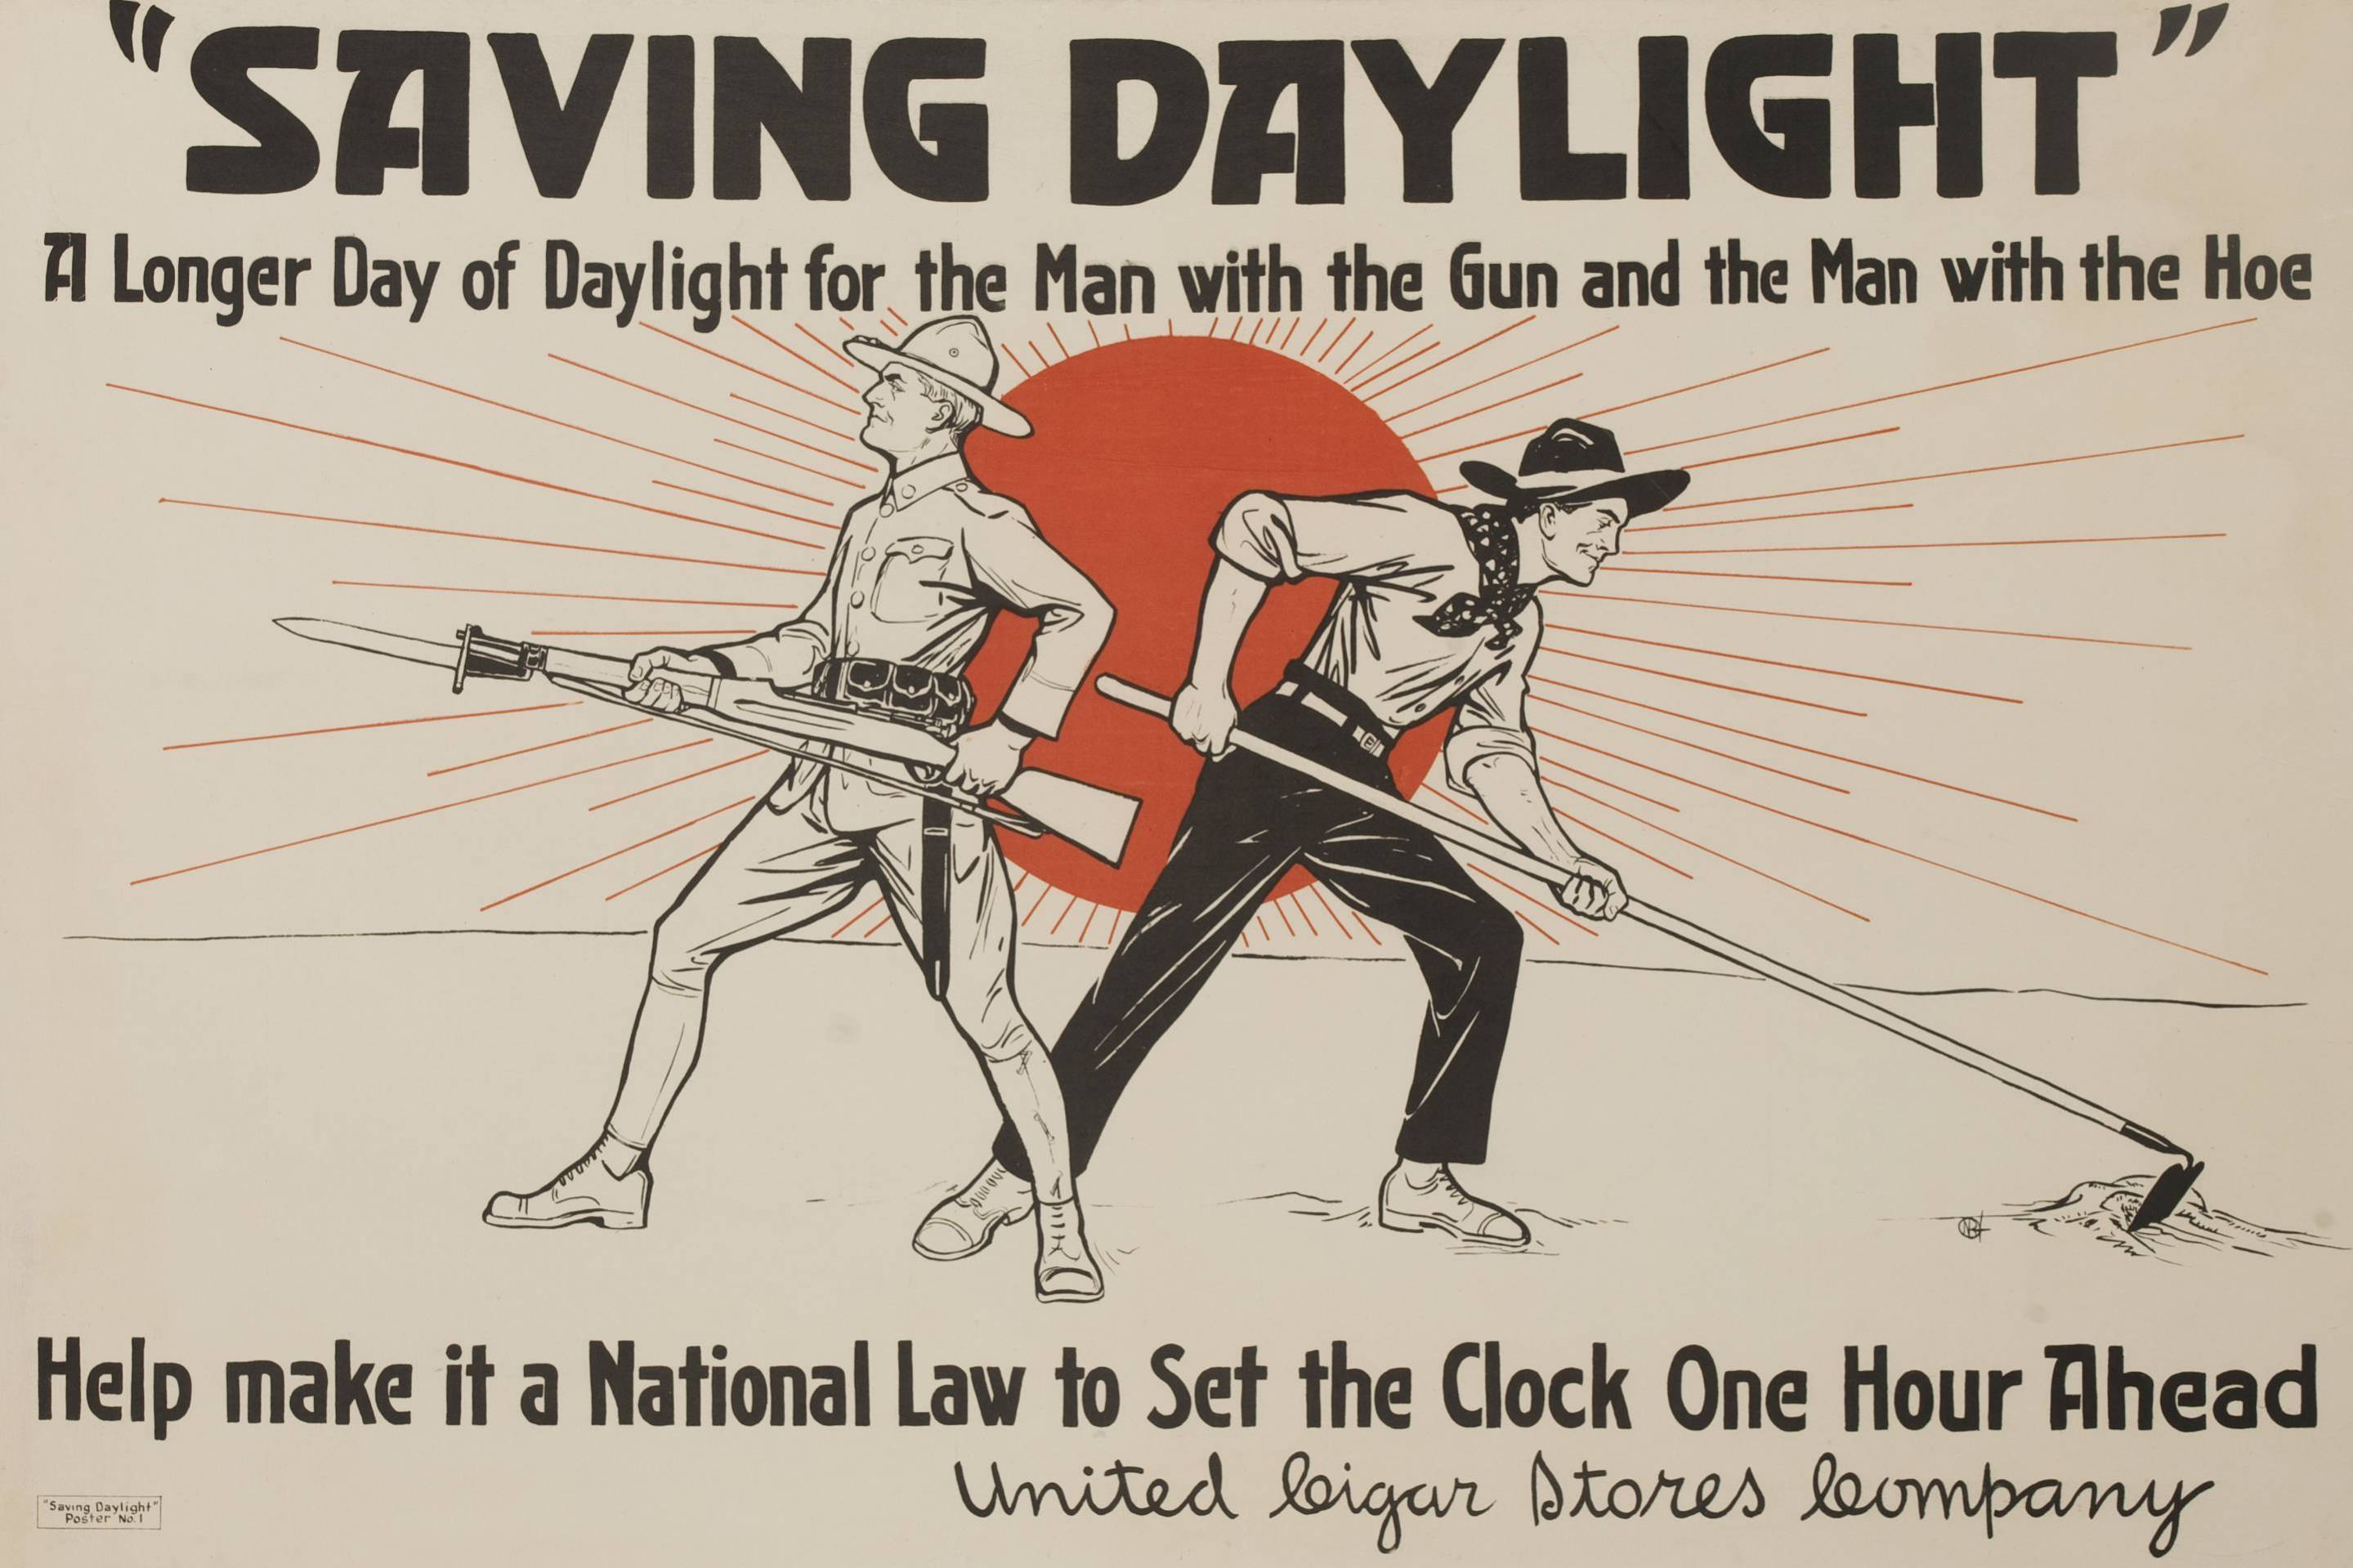 Saving Daylight, A longer day for the man with the gun and the man with the hoe.